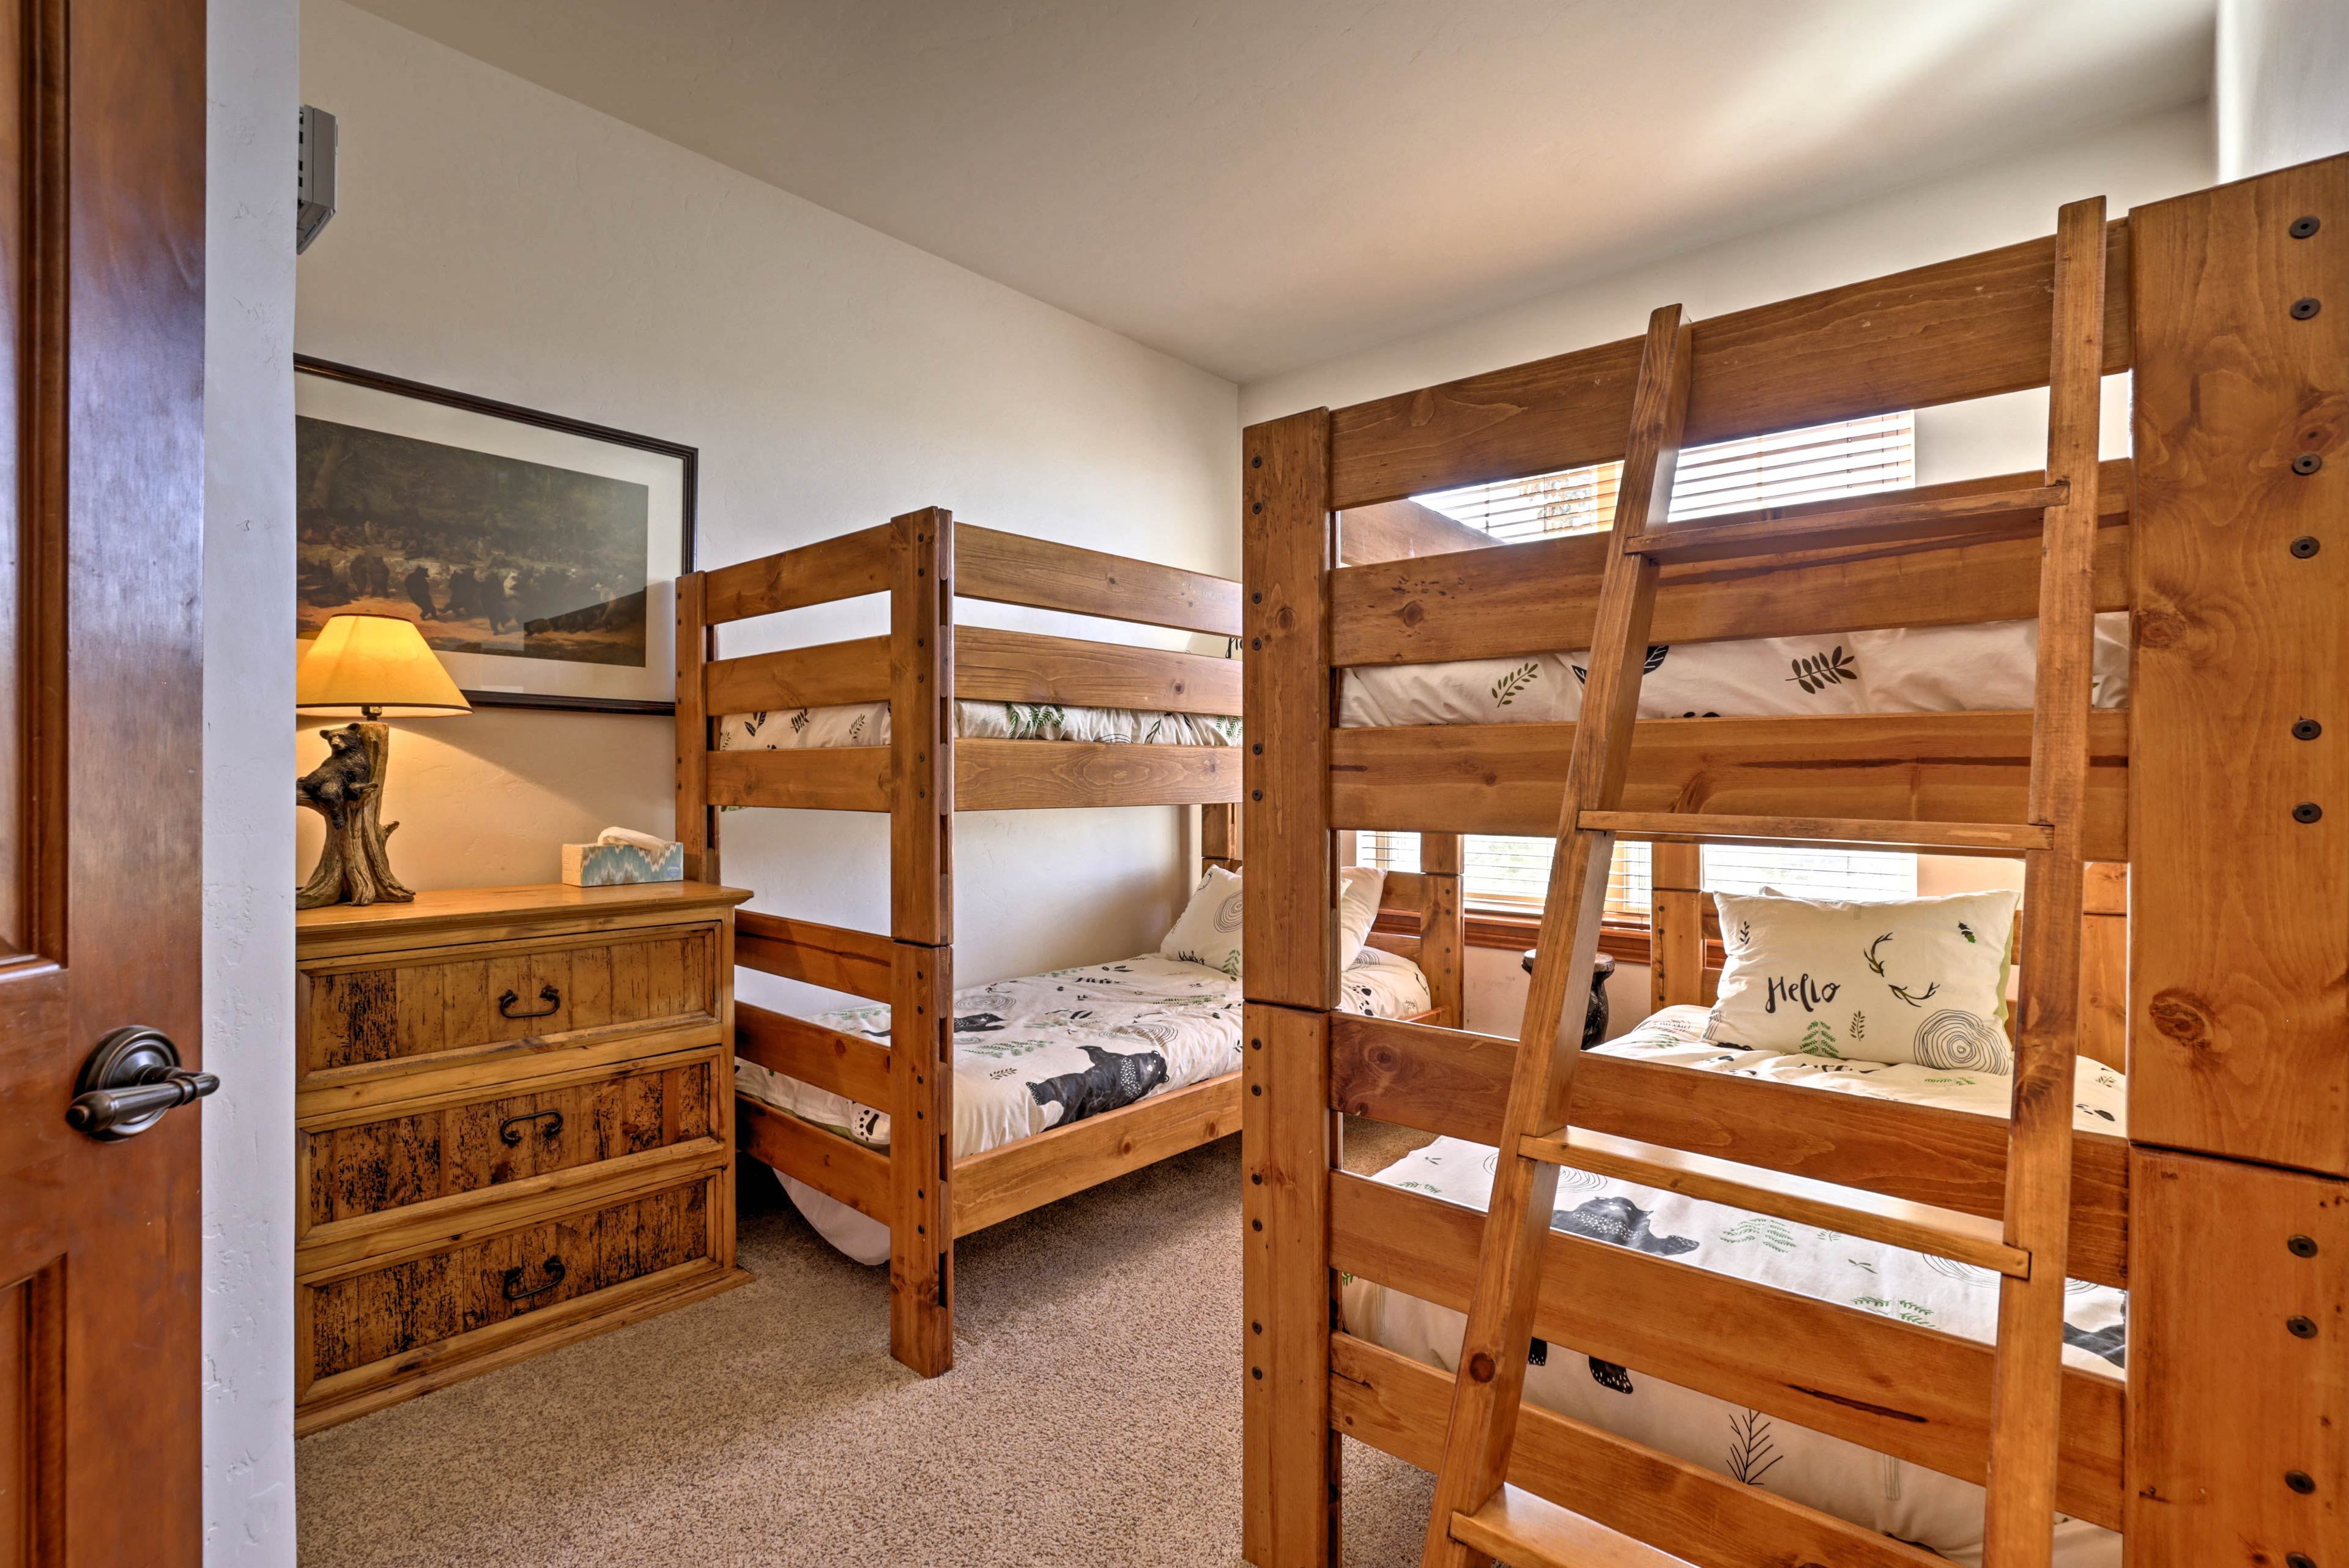 This bedroom offers 2 twin-over-twin bunk beds - perfect for the kiddos!